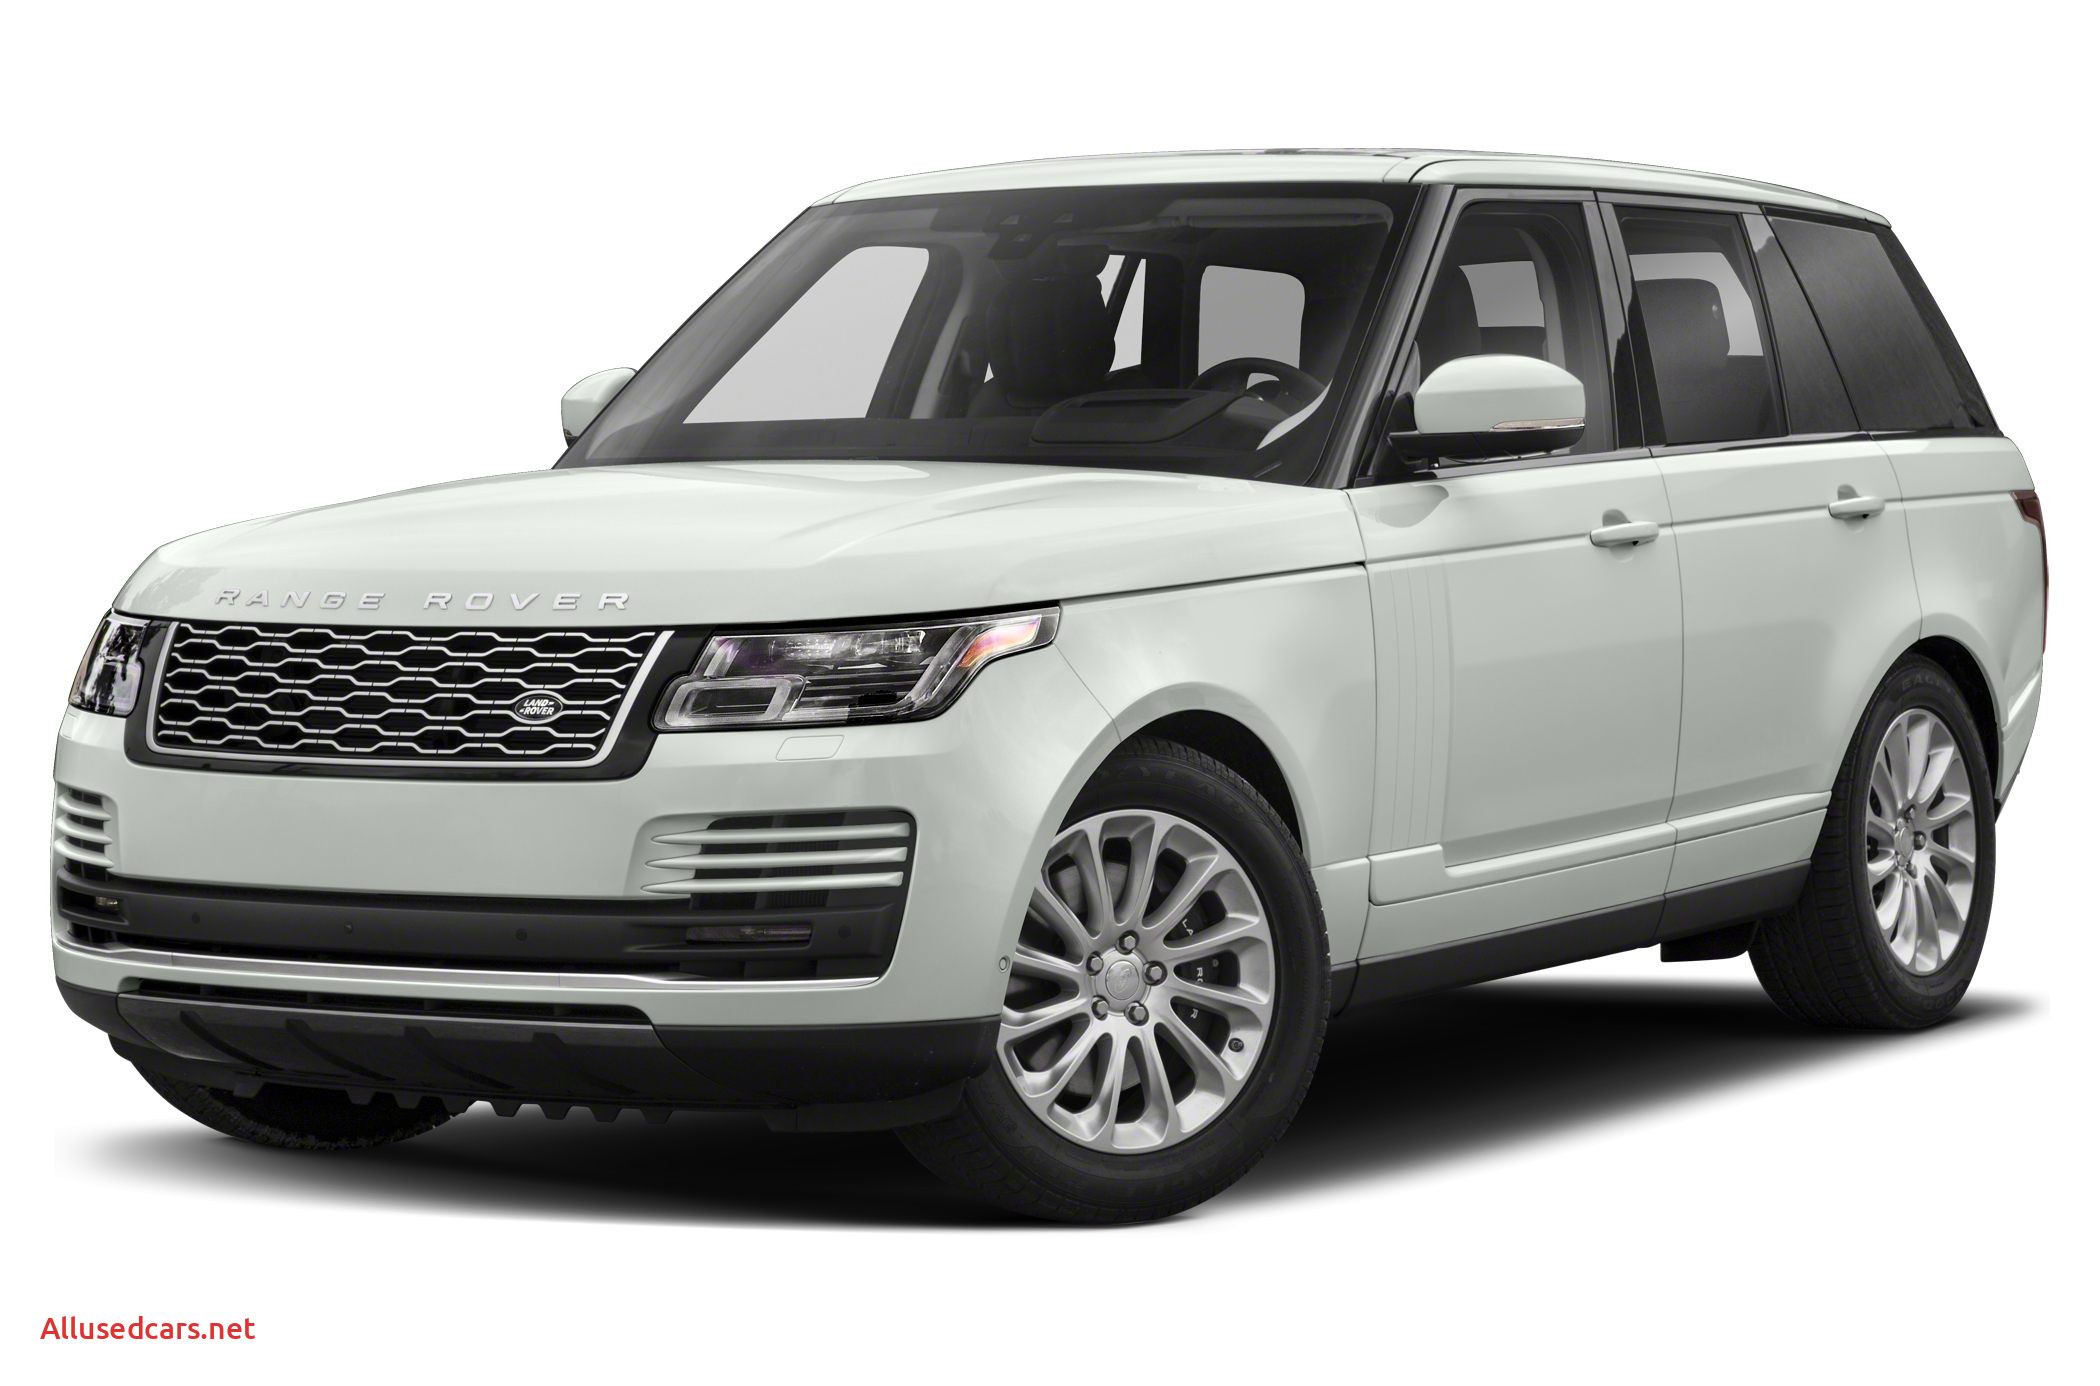 Range Rover for Sale Near Me Beautiful 2018 Land Rover Range Rover 5 0l V8 Supercharged 4dr 4x4 Pricing and Options